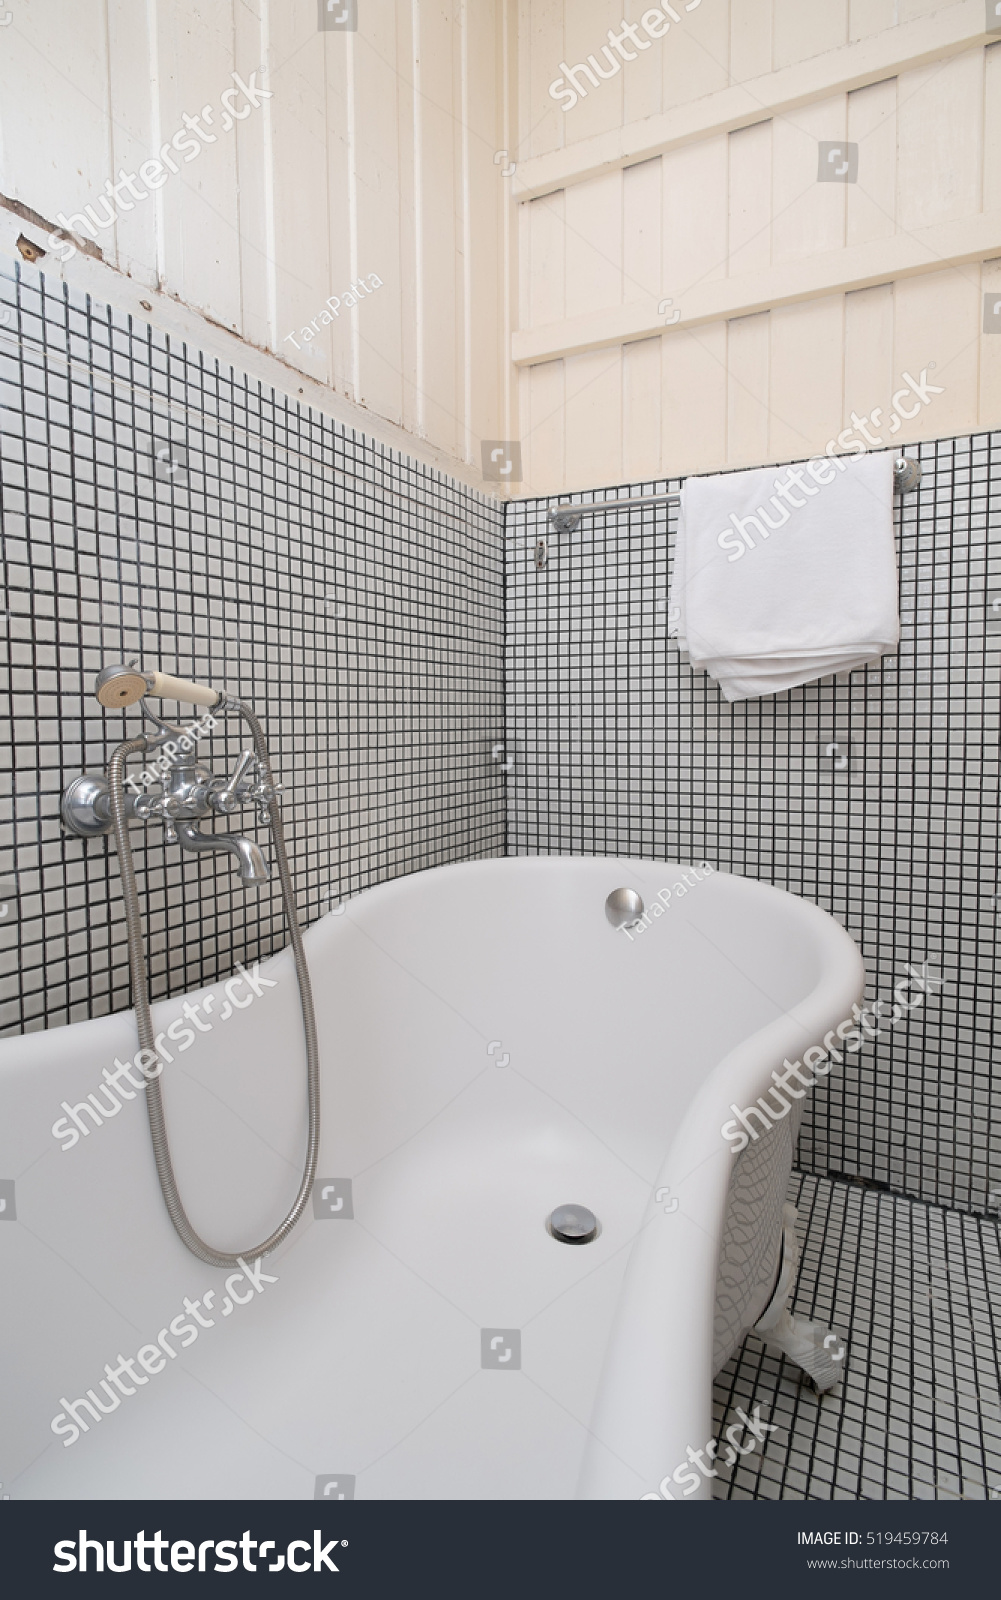 Classic Vintage Bath Tub Colonial Style Stock Photo 519459784 ...